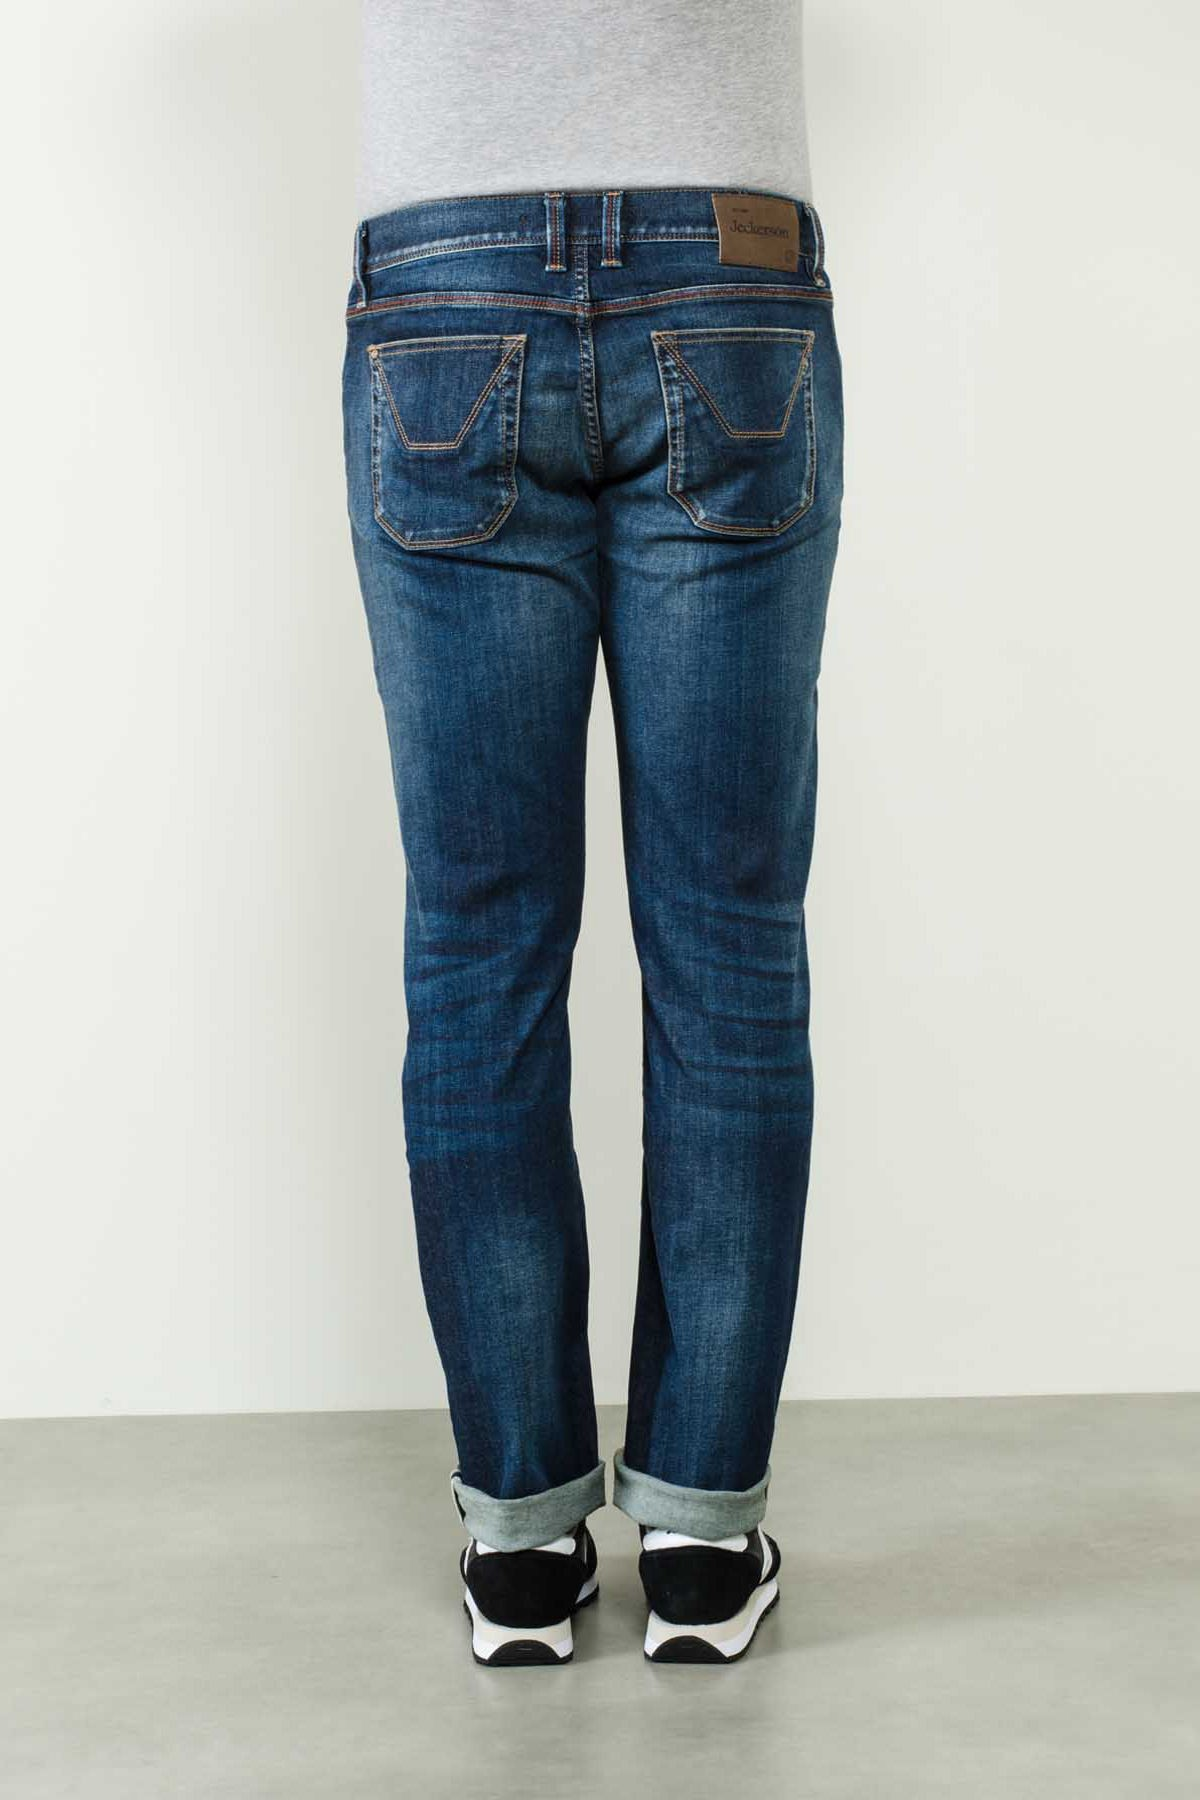 ecb9444f854 Jeans for man JECKERSON S/S17 - Rione Fontana